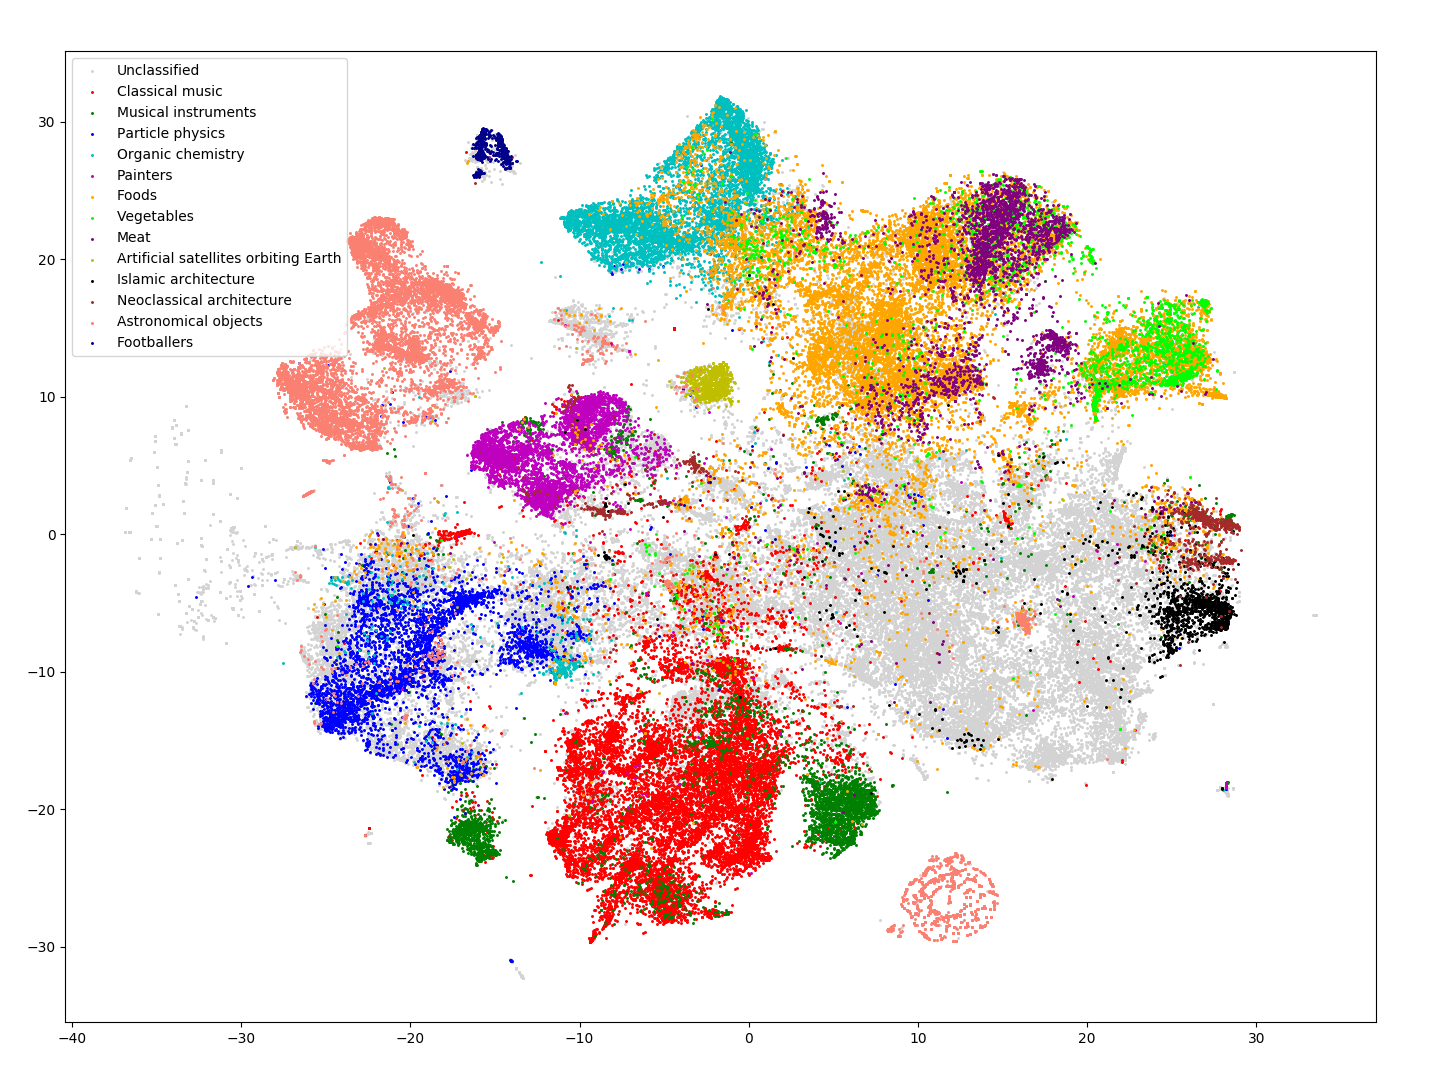 2D visualisation of 120k Wikipedia pages using PCA + t-SNE